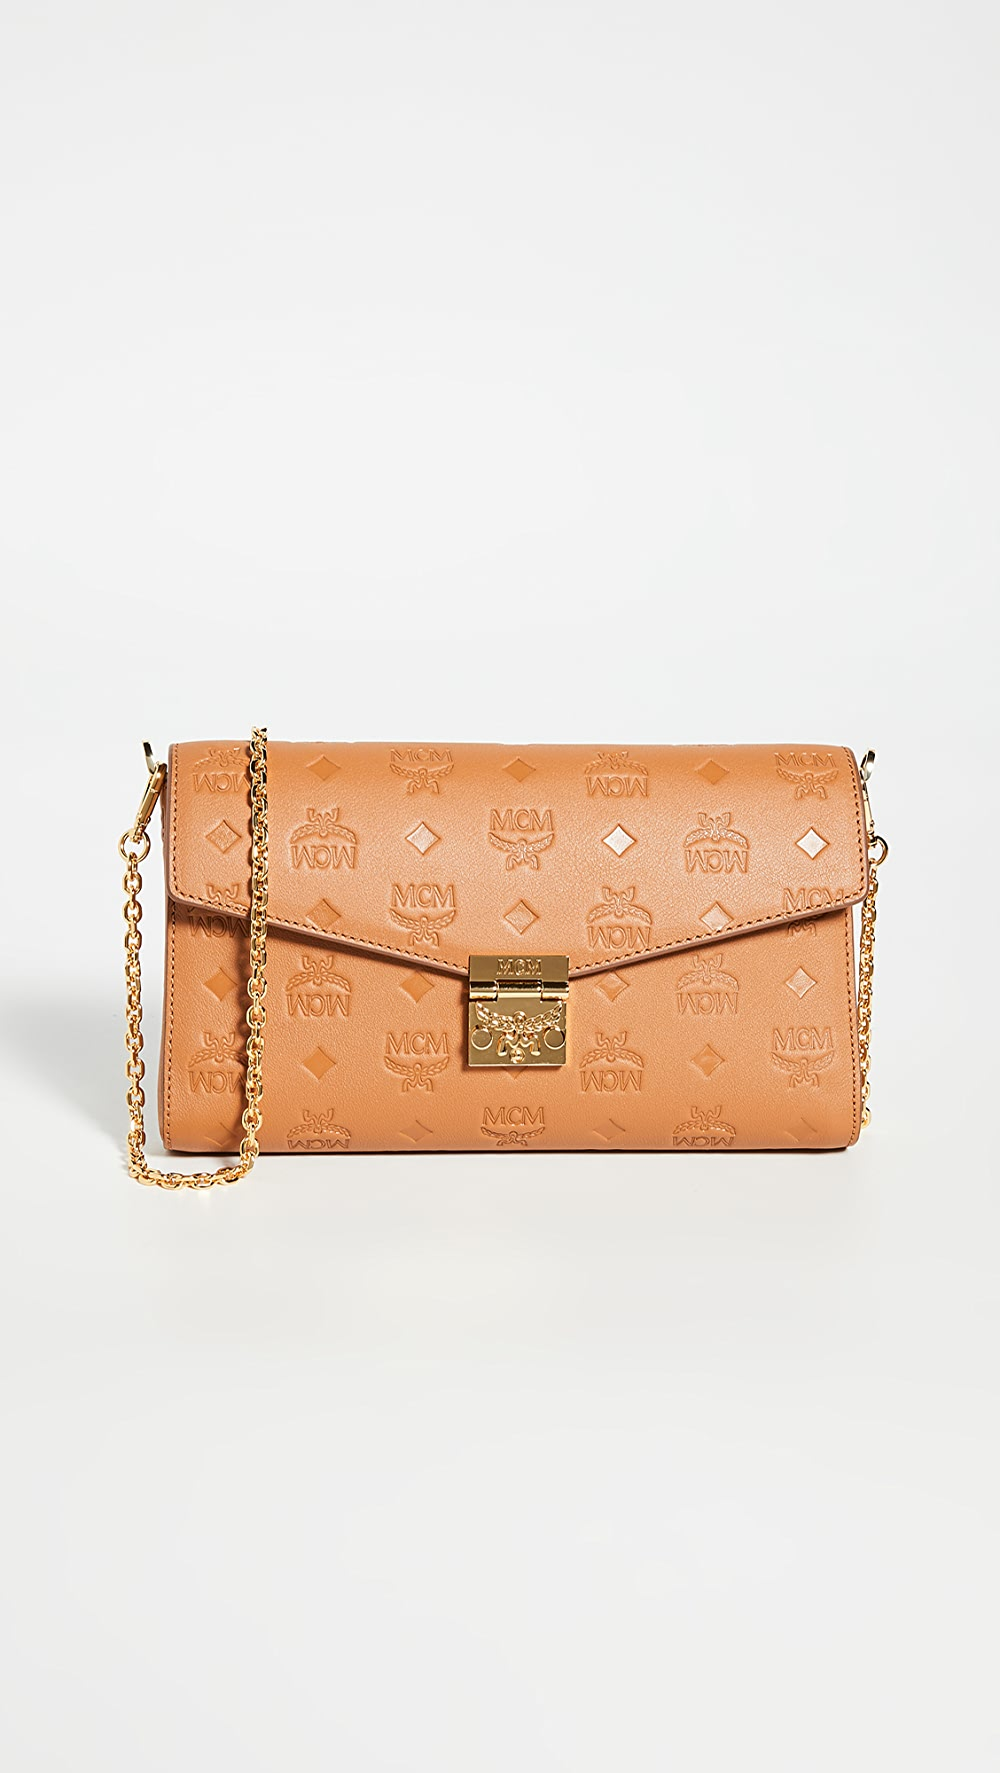 Imported From Abroad Mcm - Millie Monogrammed Small Crossbody Bag Choice Materials